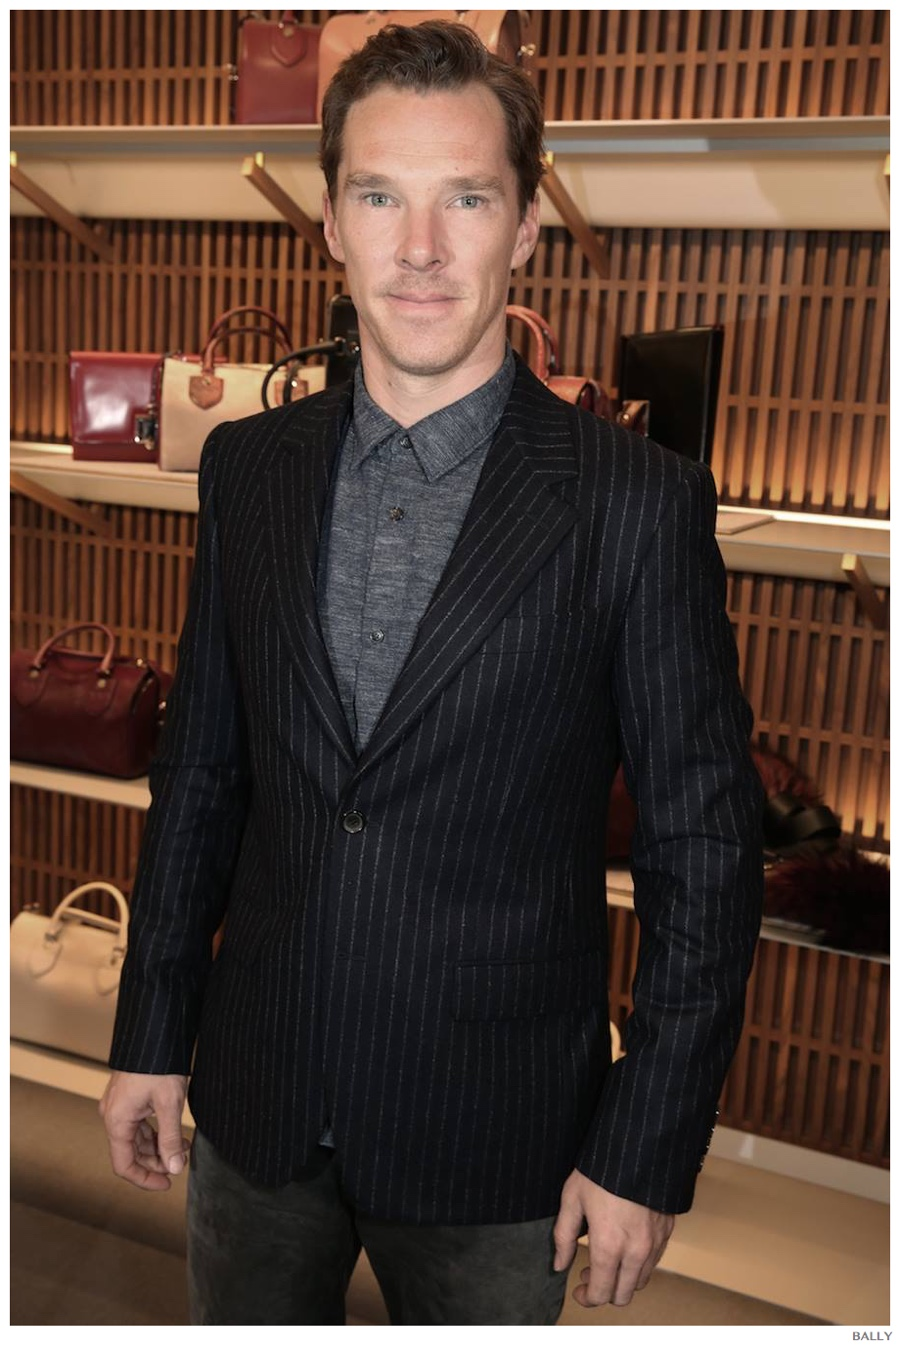 Always stylish, actor Benedict Cumberbatch plays with classic pinstripes as a smart separate.